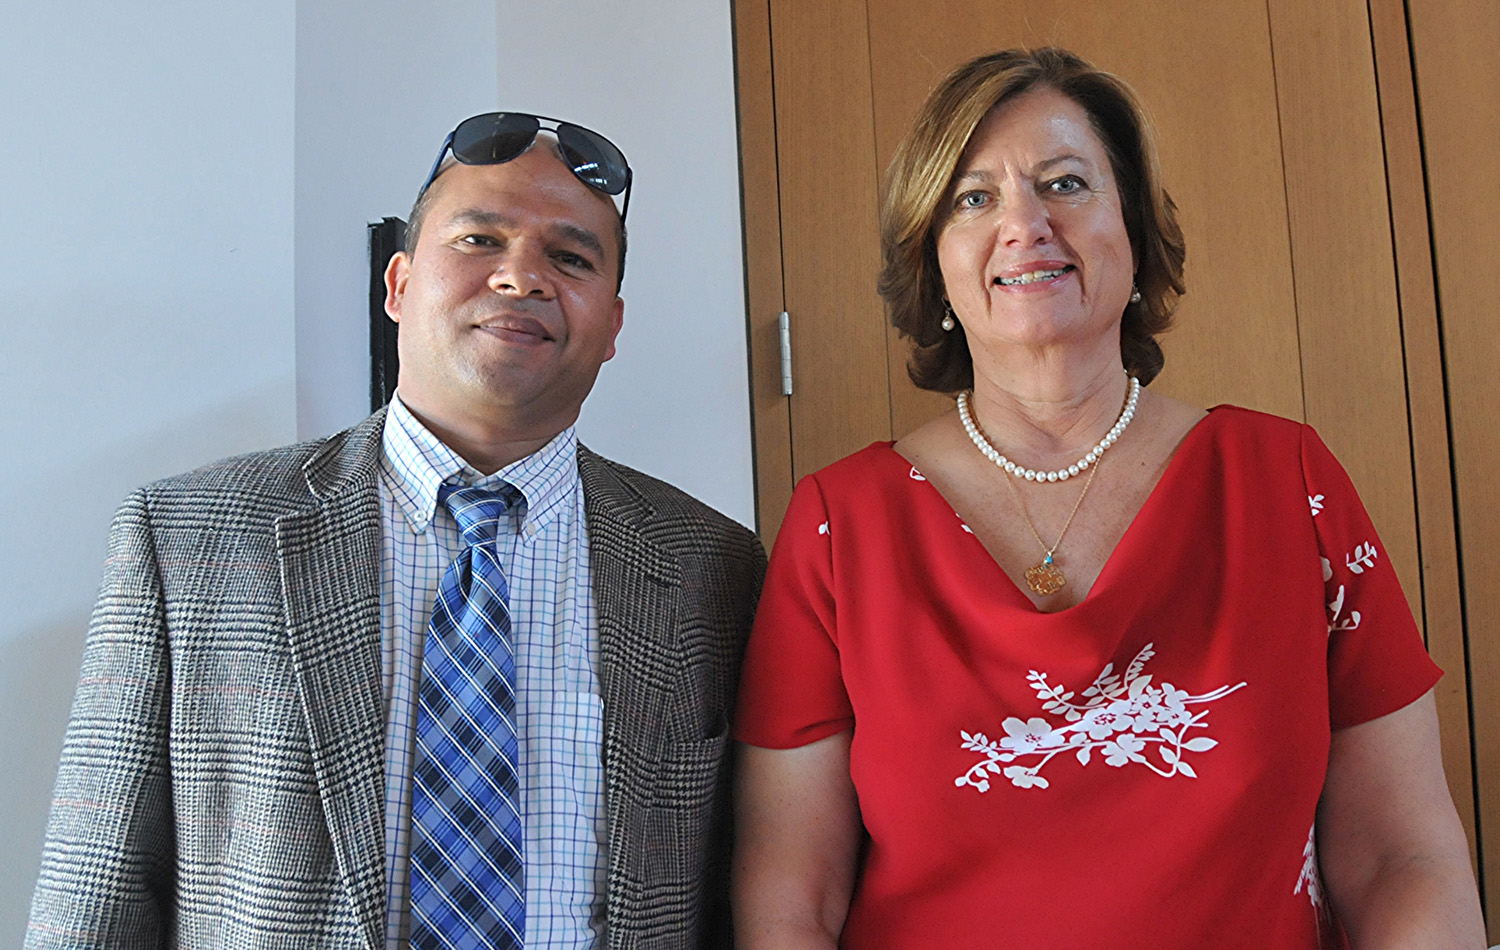 Krishna Panbey, owner of Haveli India, with Purchasing Director Olga Booka, who helped organize the event together with the Campus Activities Committee.